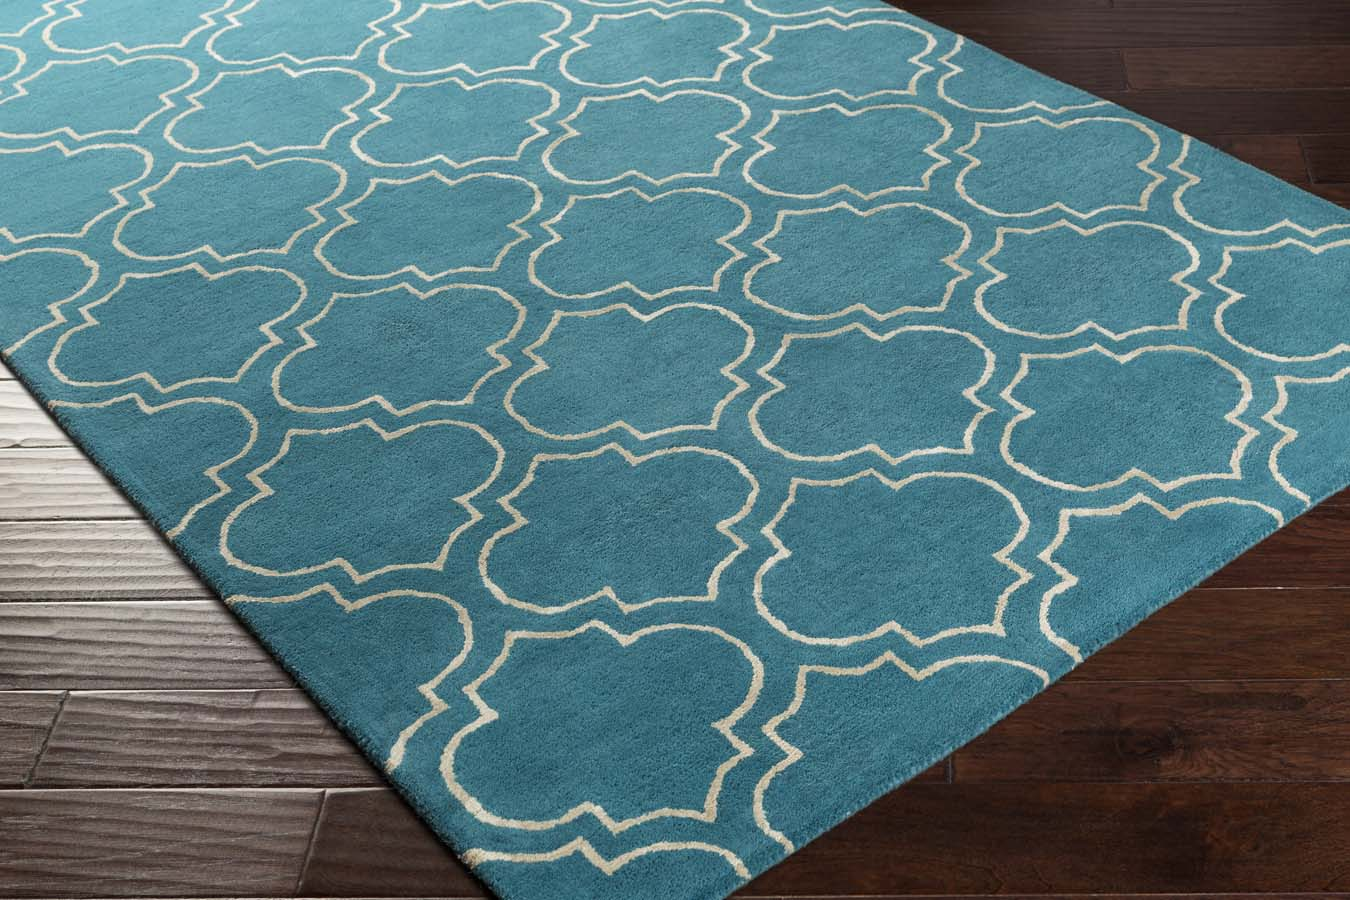 Signature Collection by Artistic Weavers